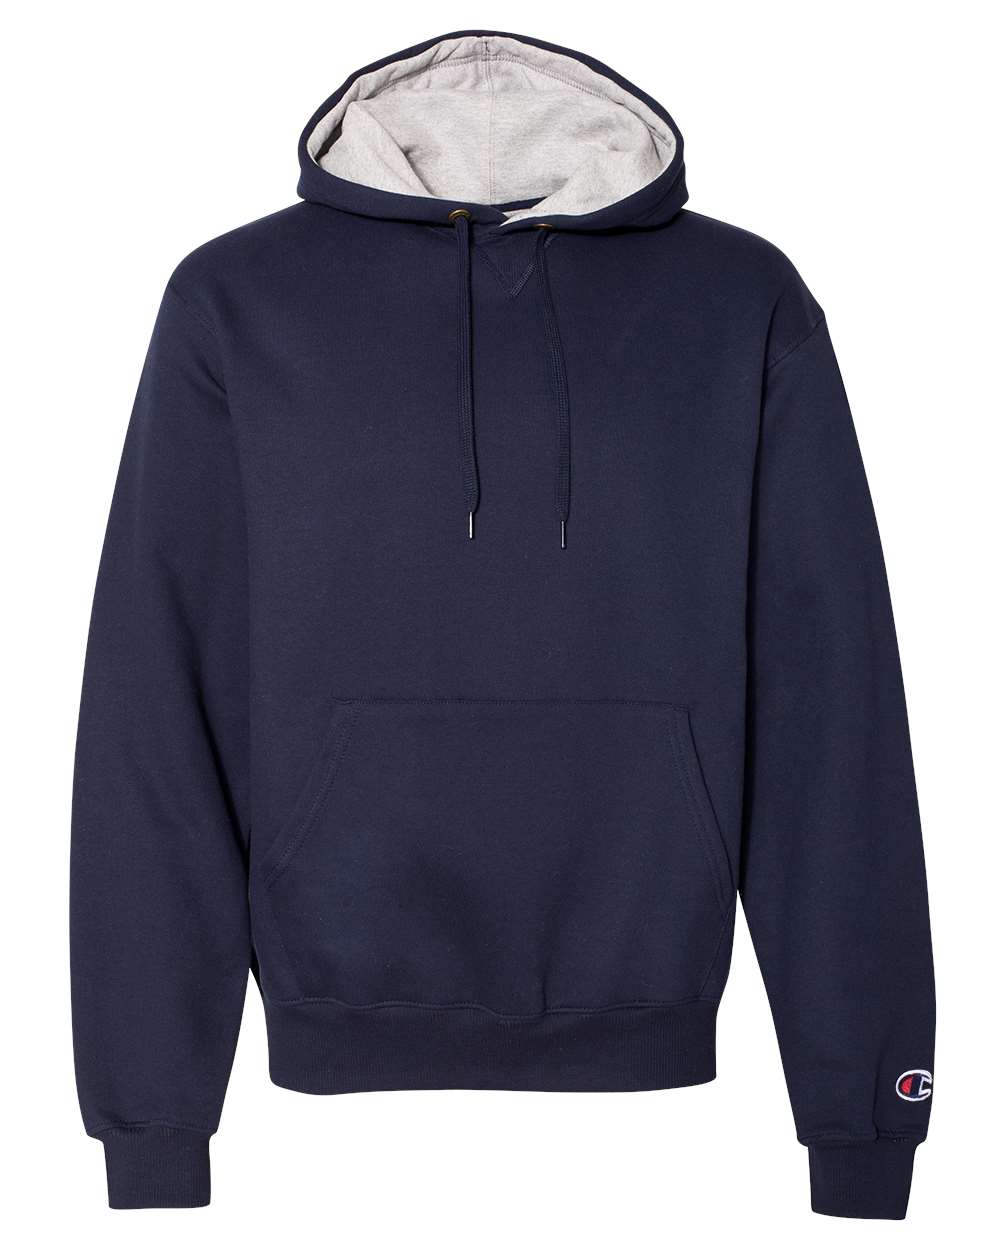 Champion-Mens-Cotton-Max-Hooded-Sweatshirt-Hoodie-Pullover-S171-up-to-3XL miniature 15